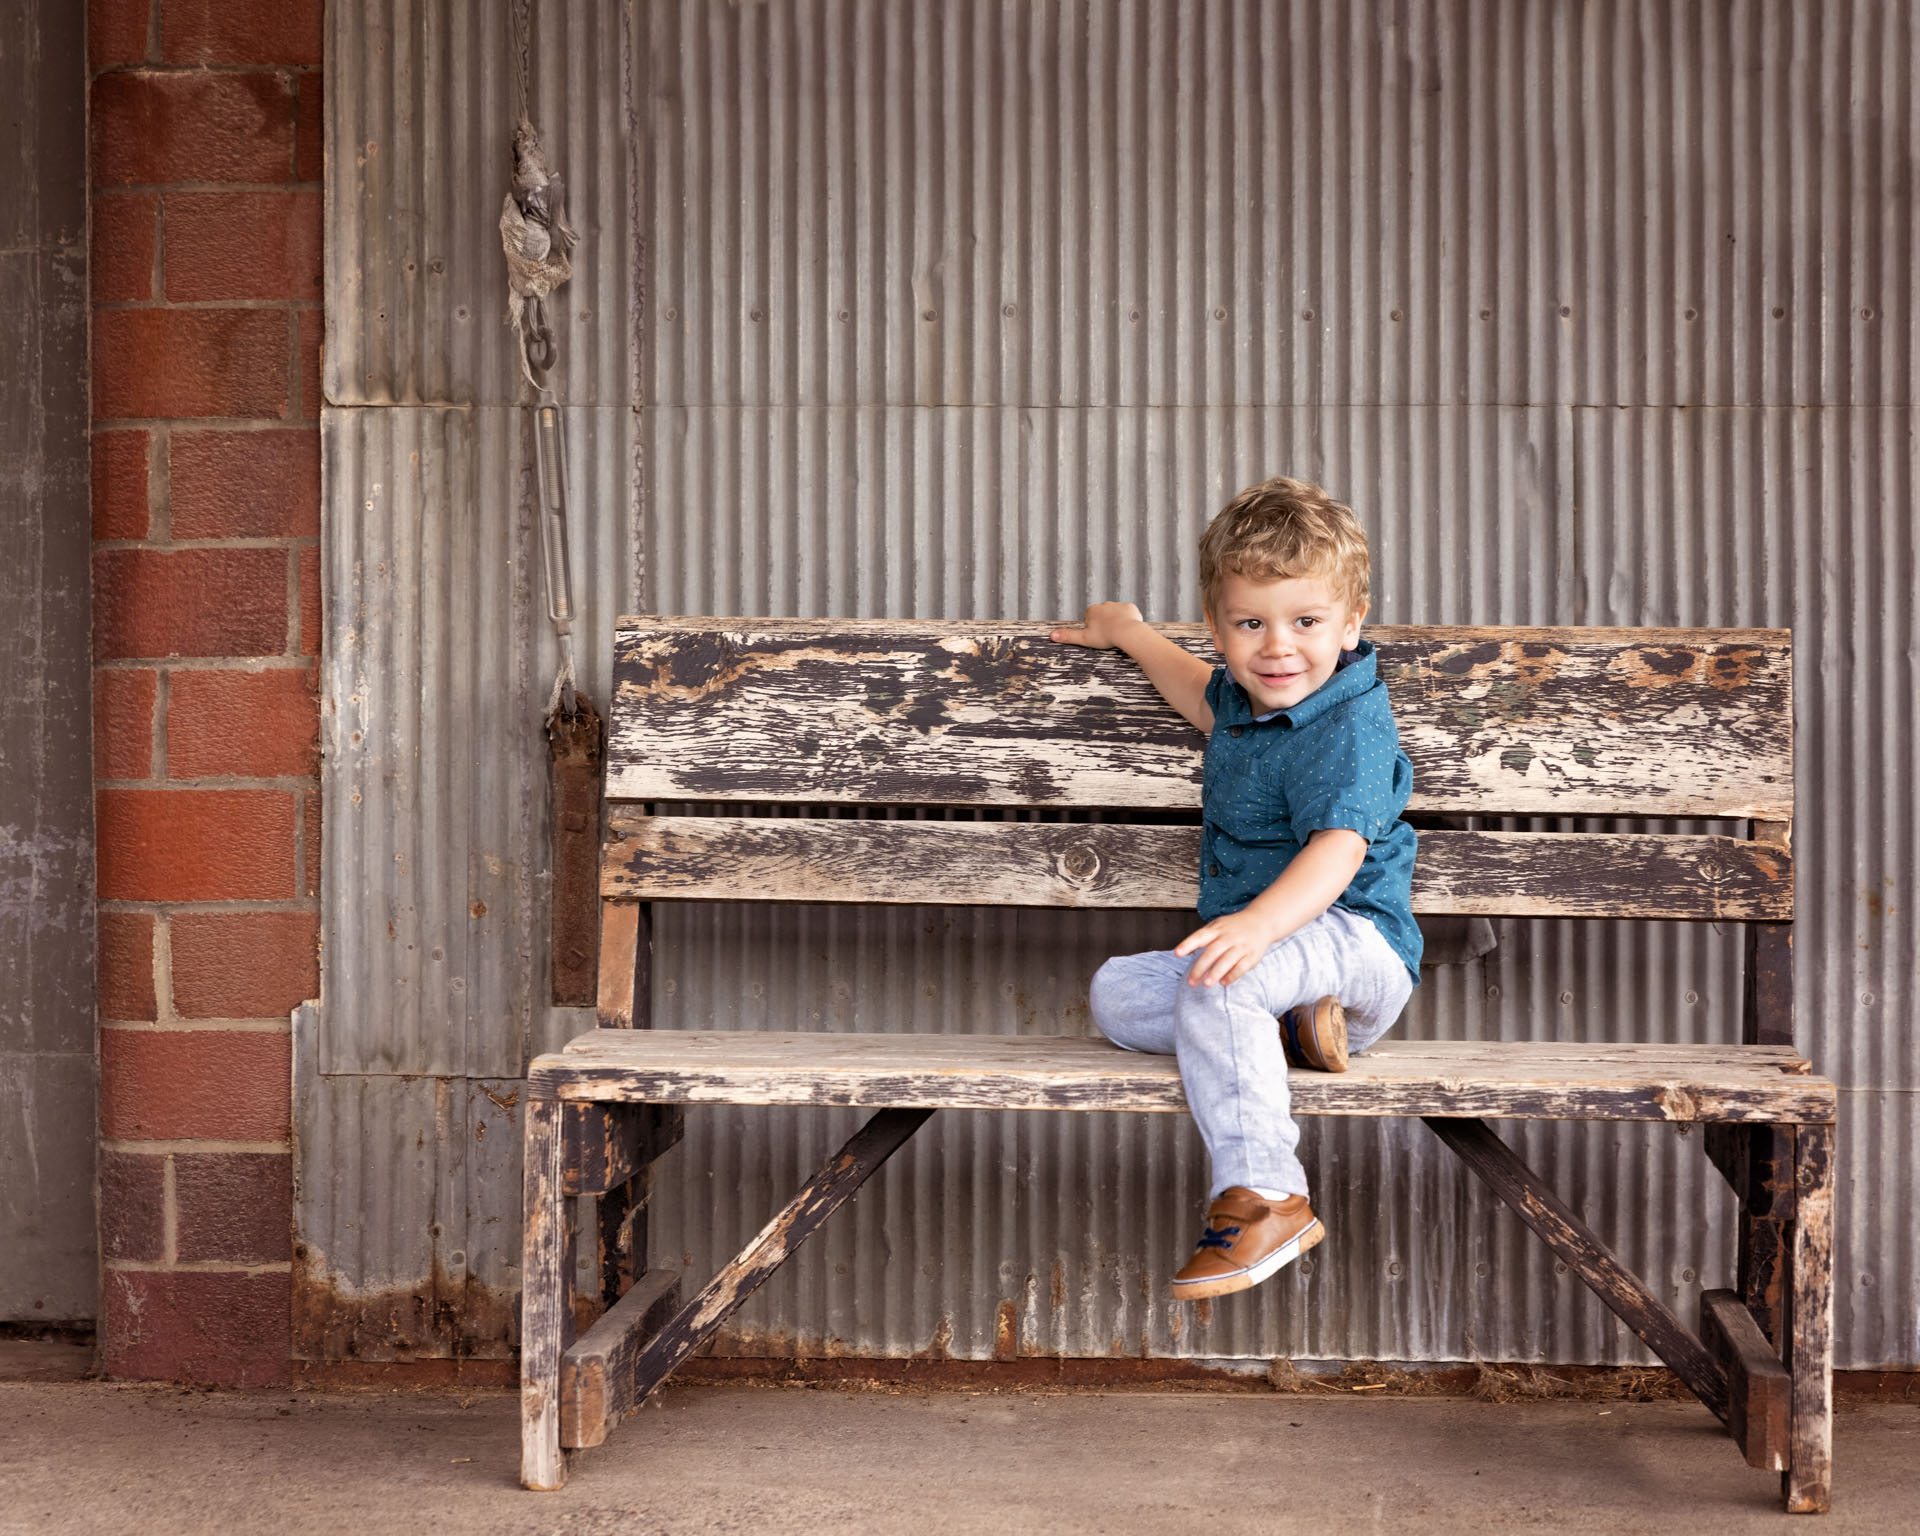 On the farm children's portrait photography with birthday boy sitting on bench in Andover, MN